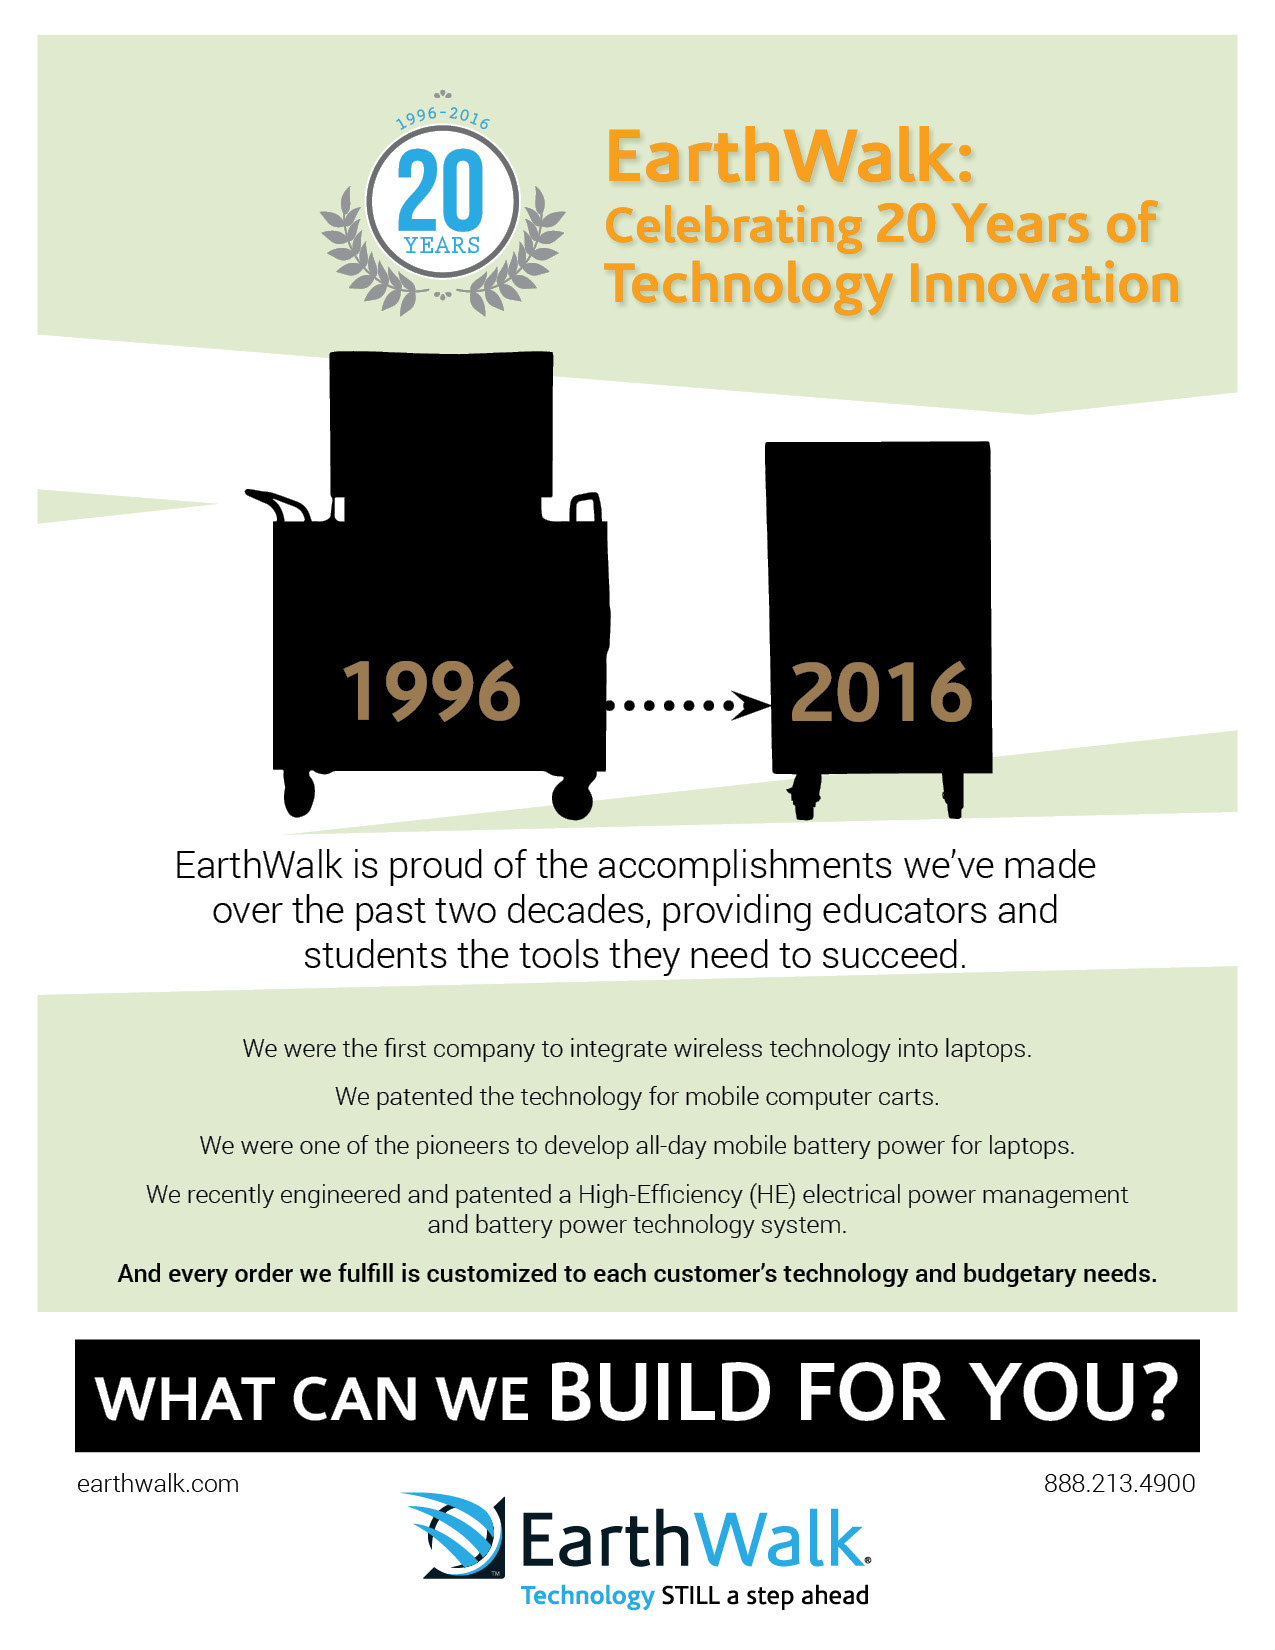 Celebrating 20 years of Technology Innovation